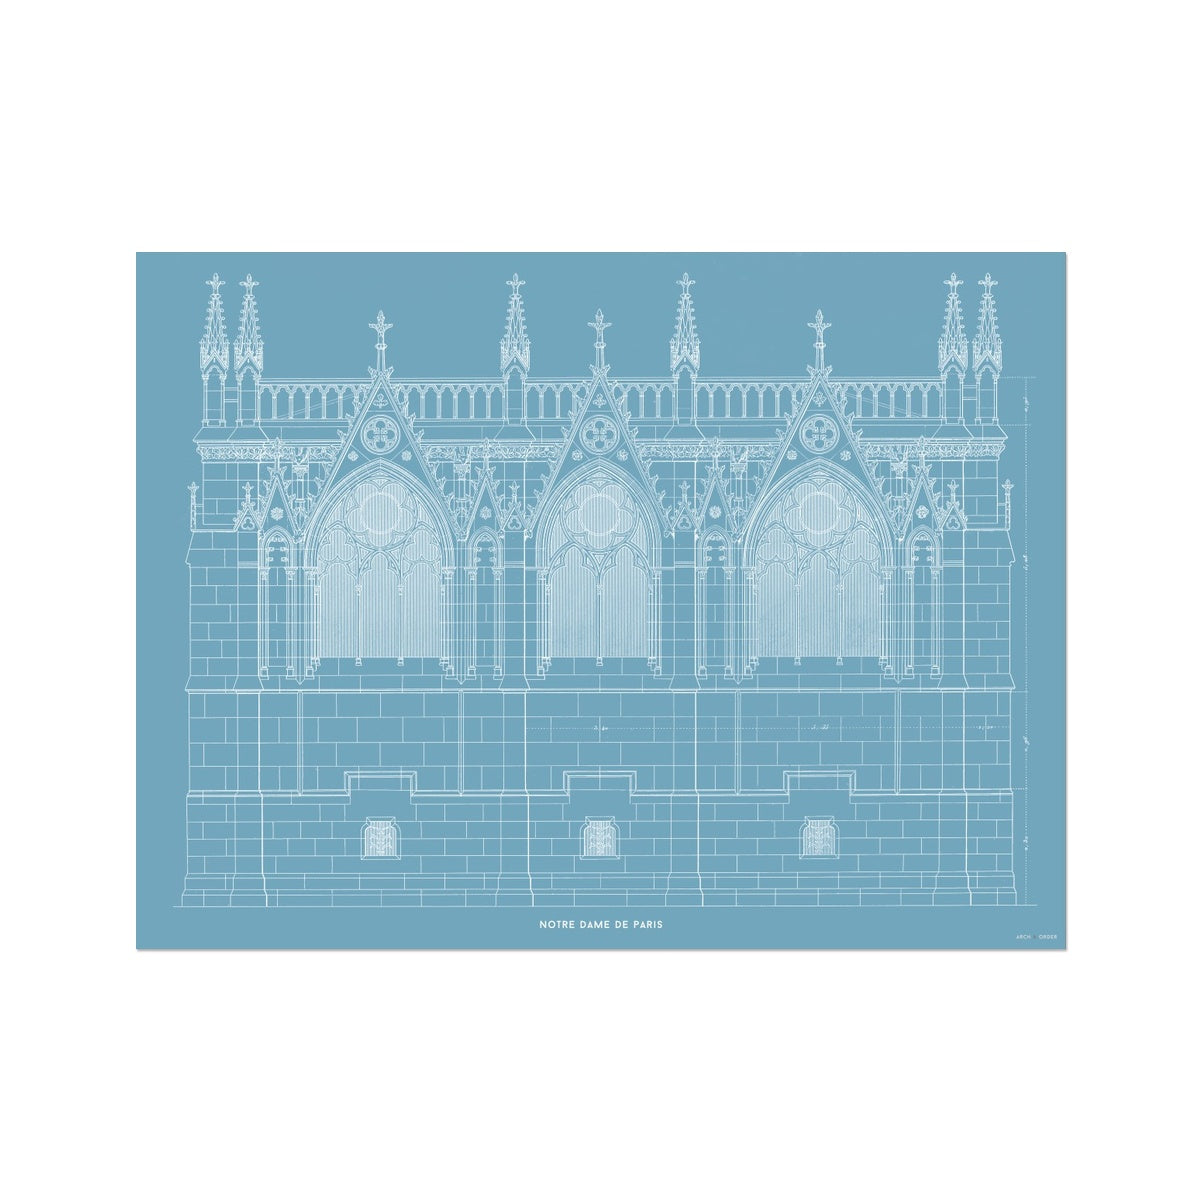 Notre Dame de Paris - Side Elevation - Blue -  Etching Paper Print